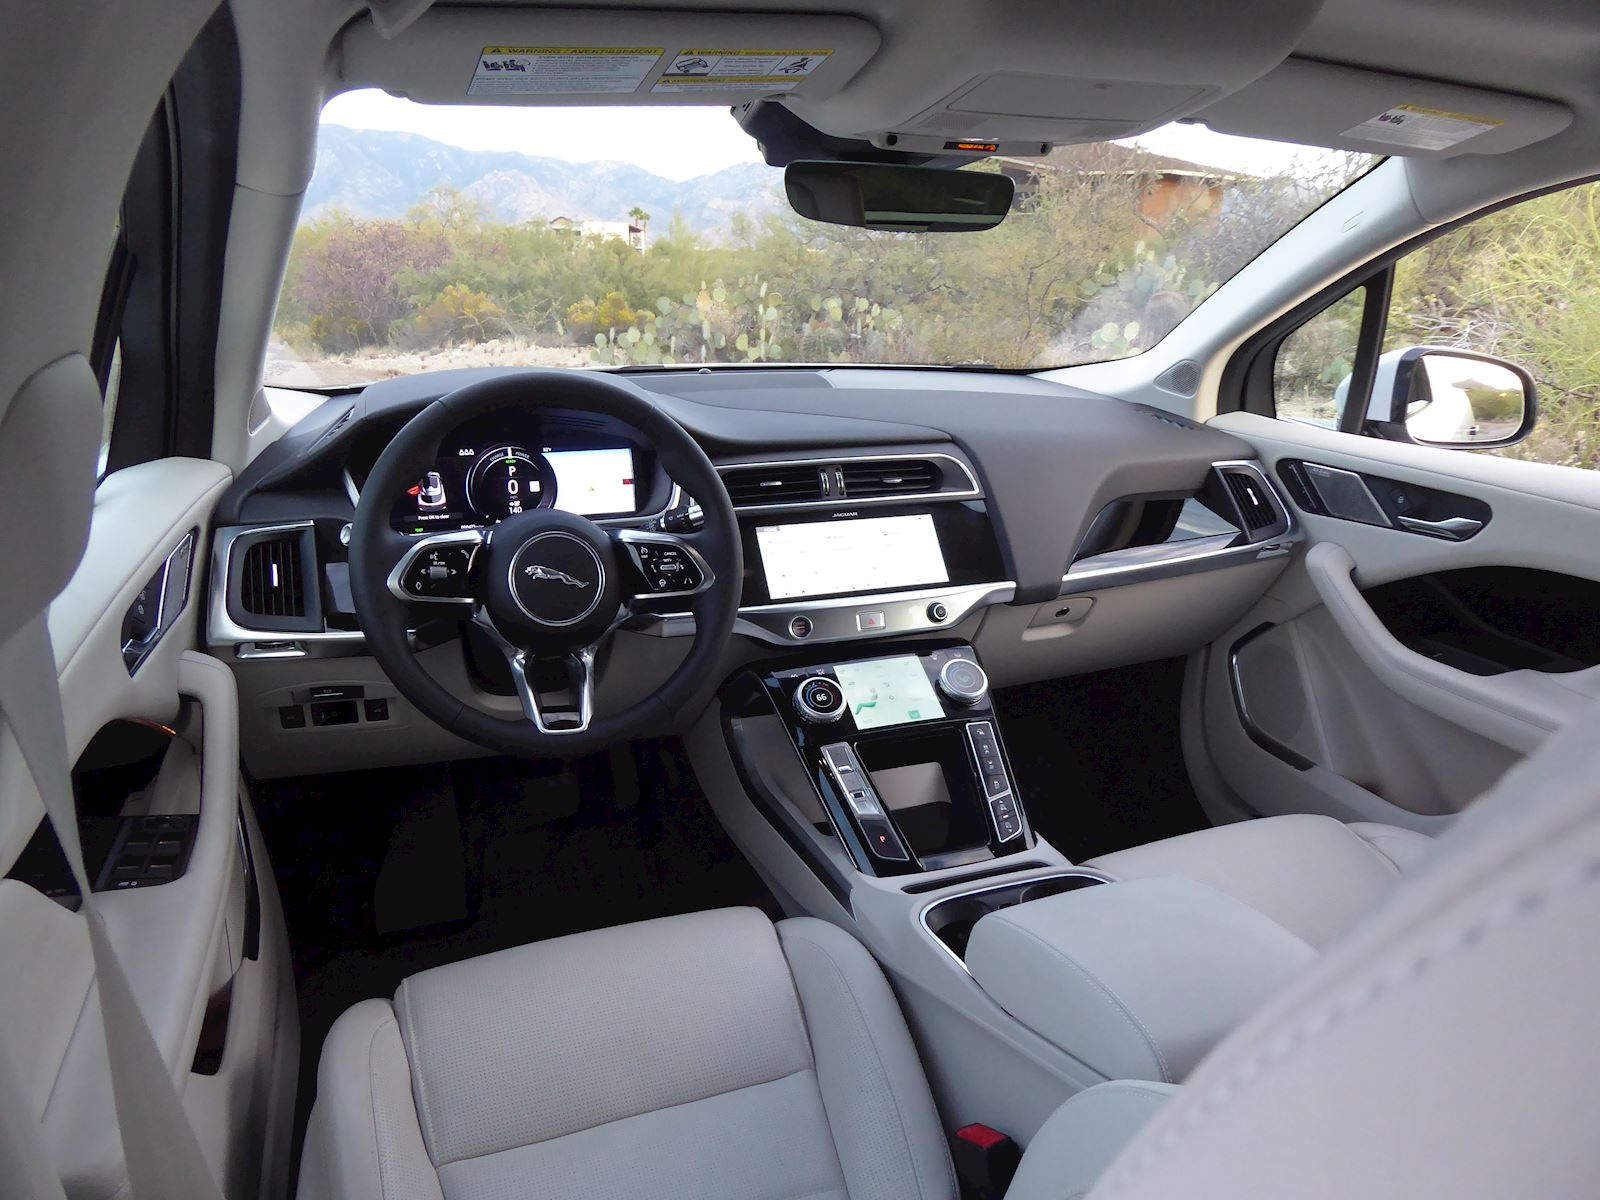 2020 Jaguar I-Pace dashboard and interior